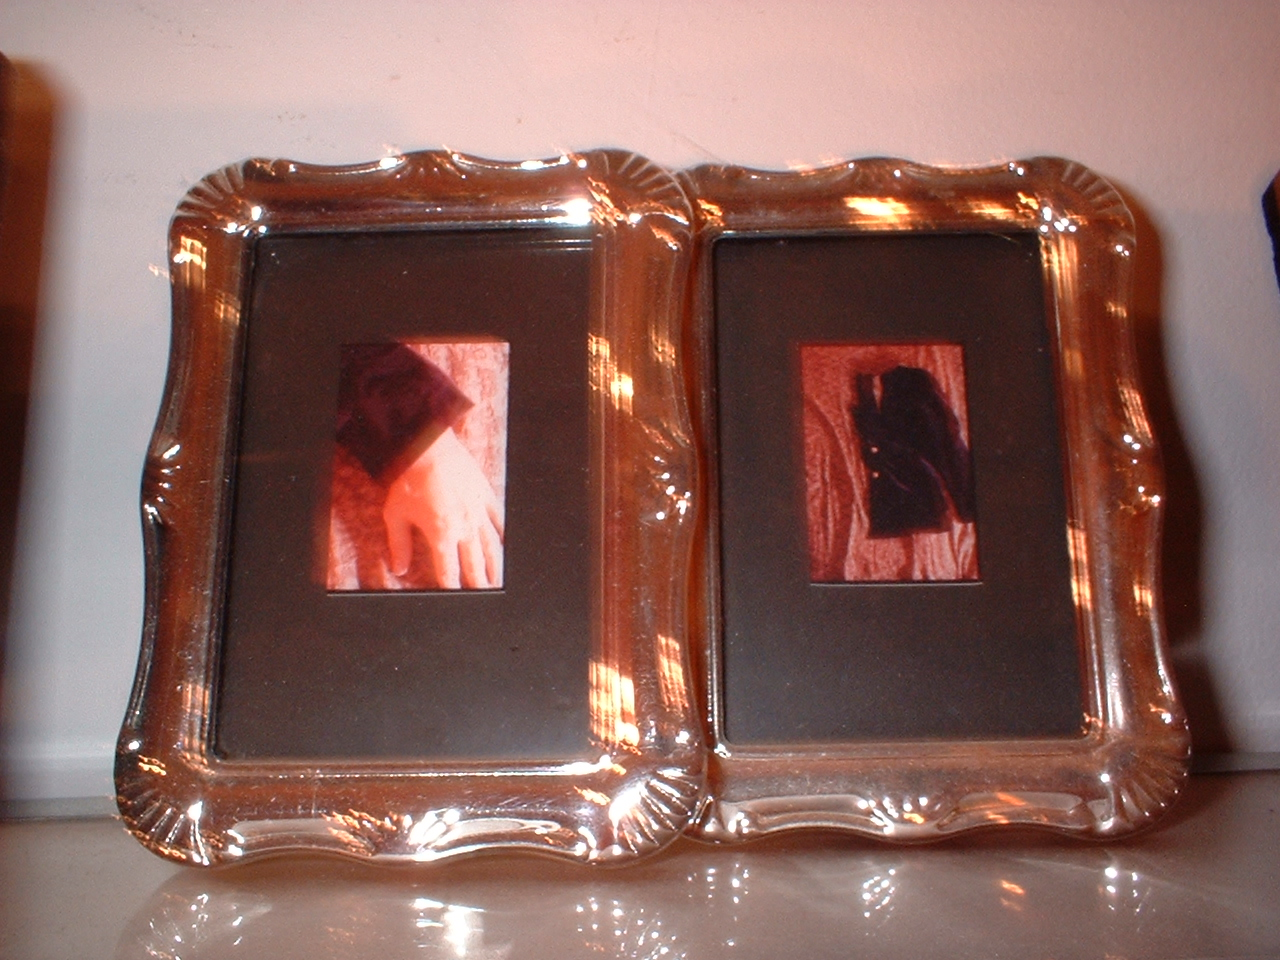 [detail] Poetry of cut clothing. 1999; color photographs, metal frames w/ glass, glass & metal shelves, chain